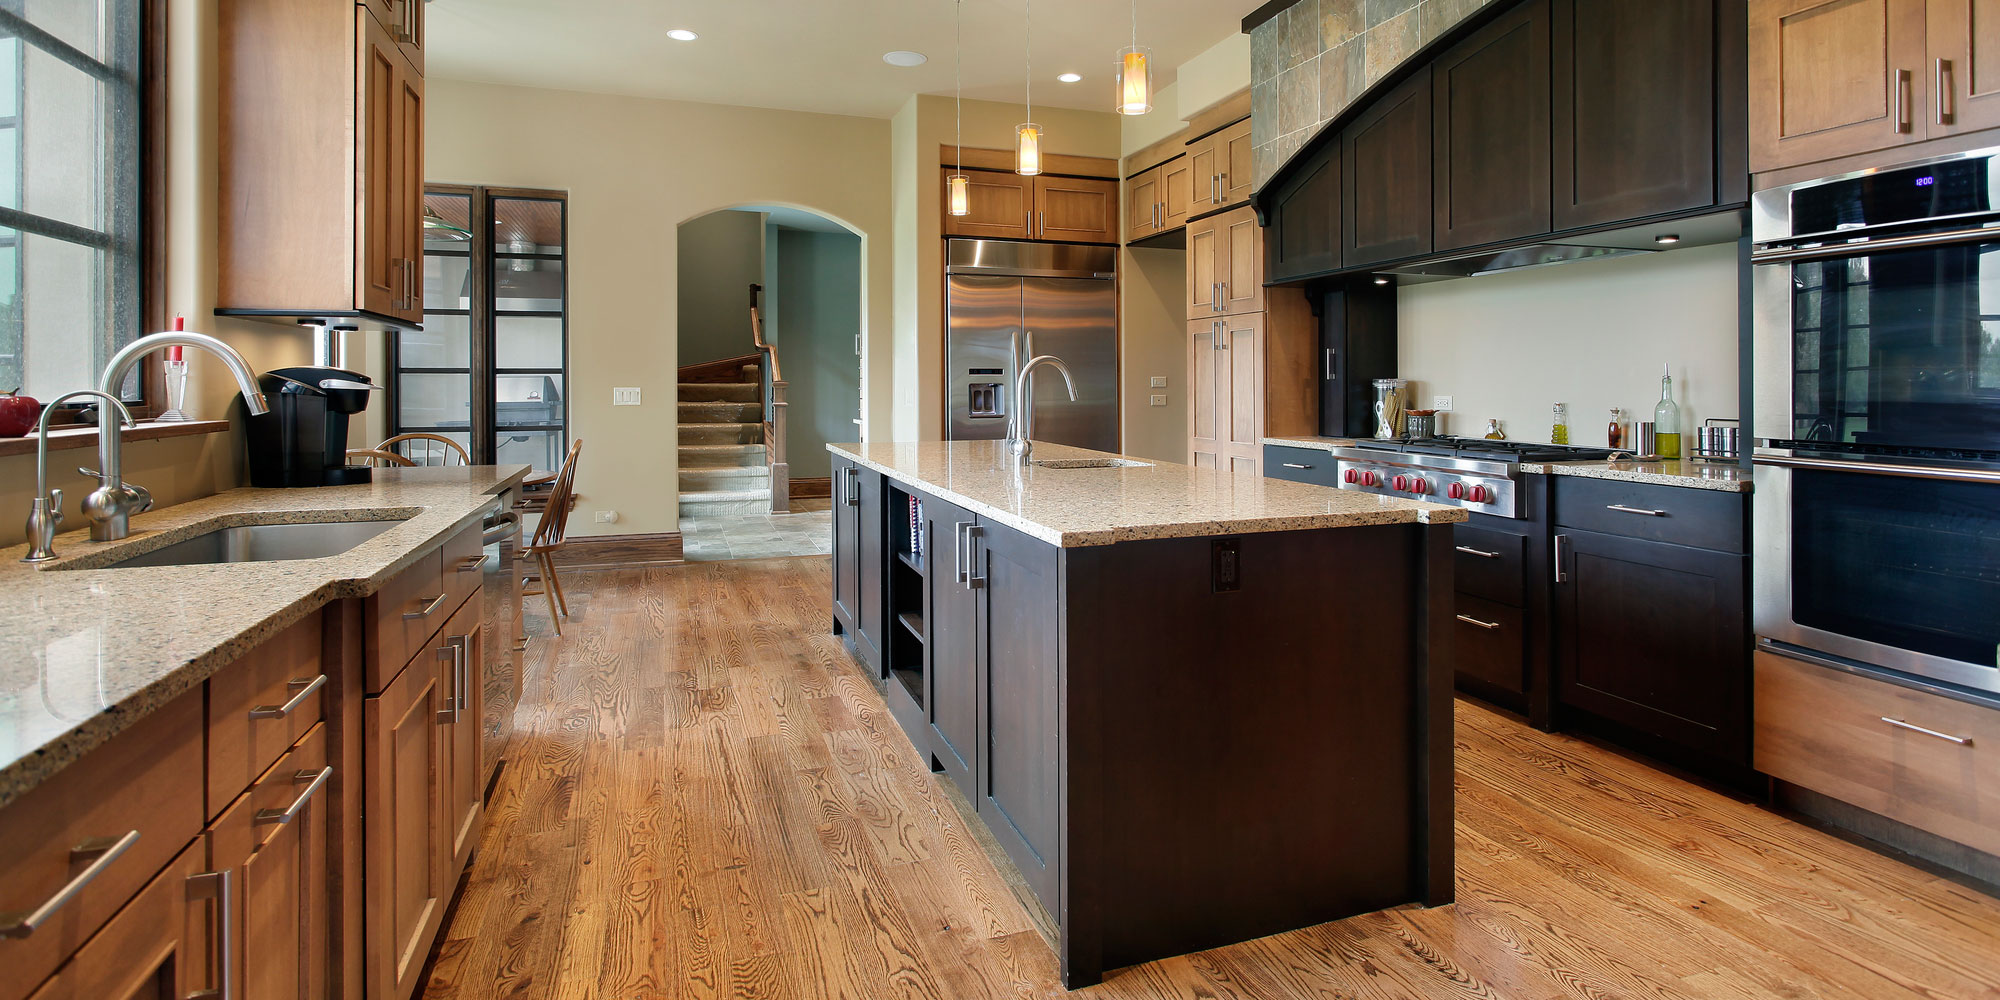 Interior Denver Kitchen Cabinets hti granite cabinetry kitchen cabinets denver countertops denver